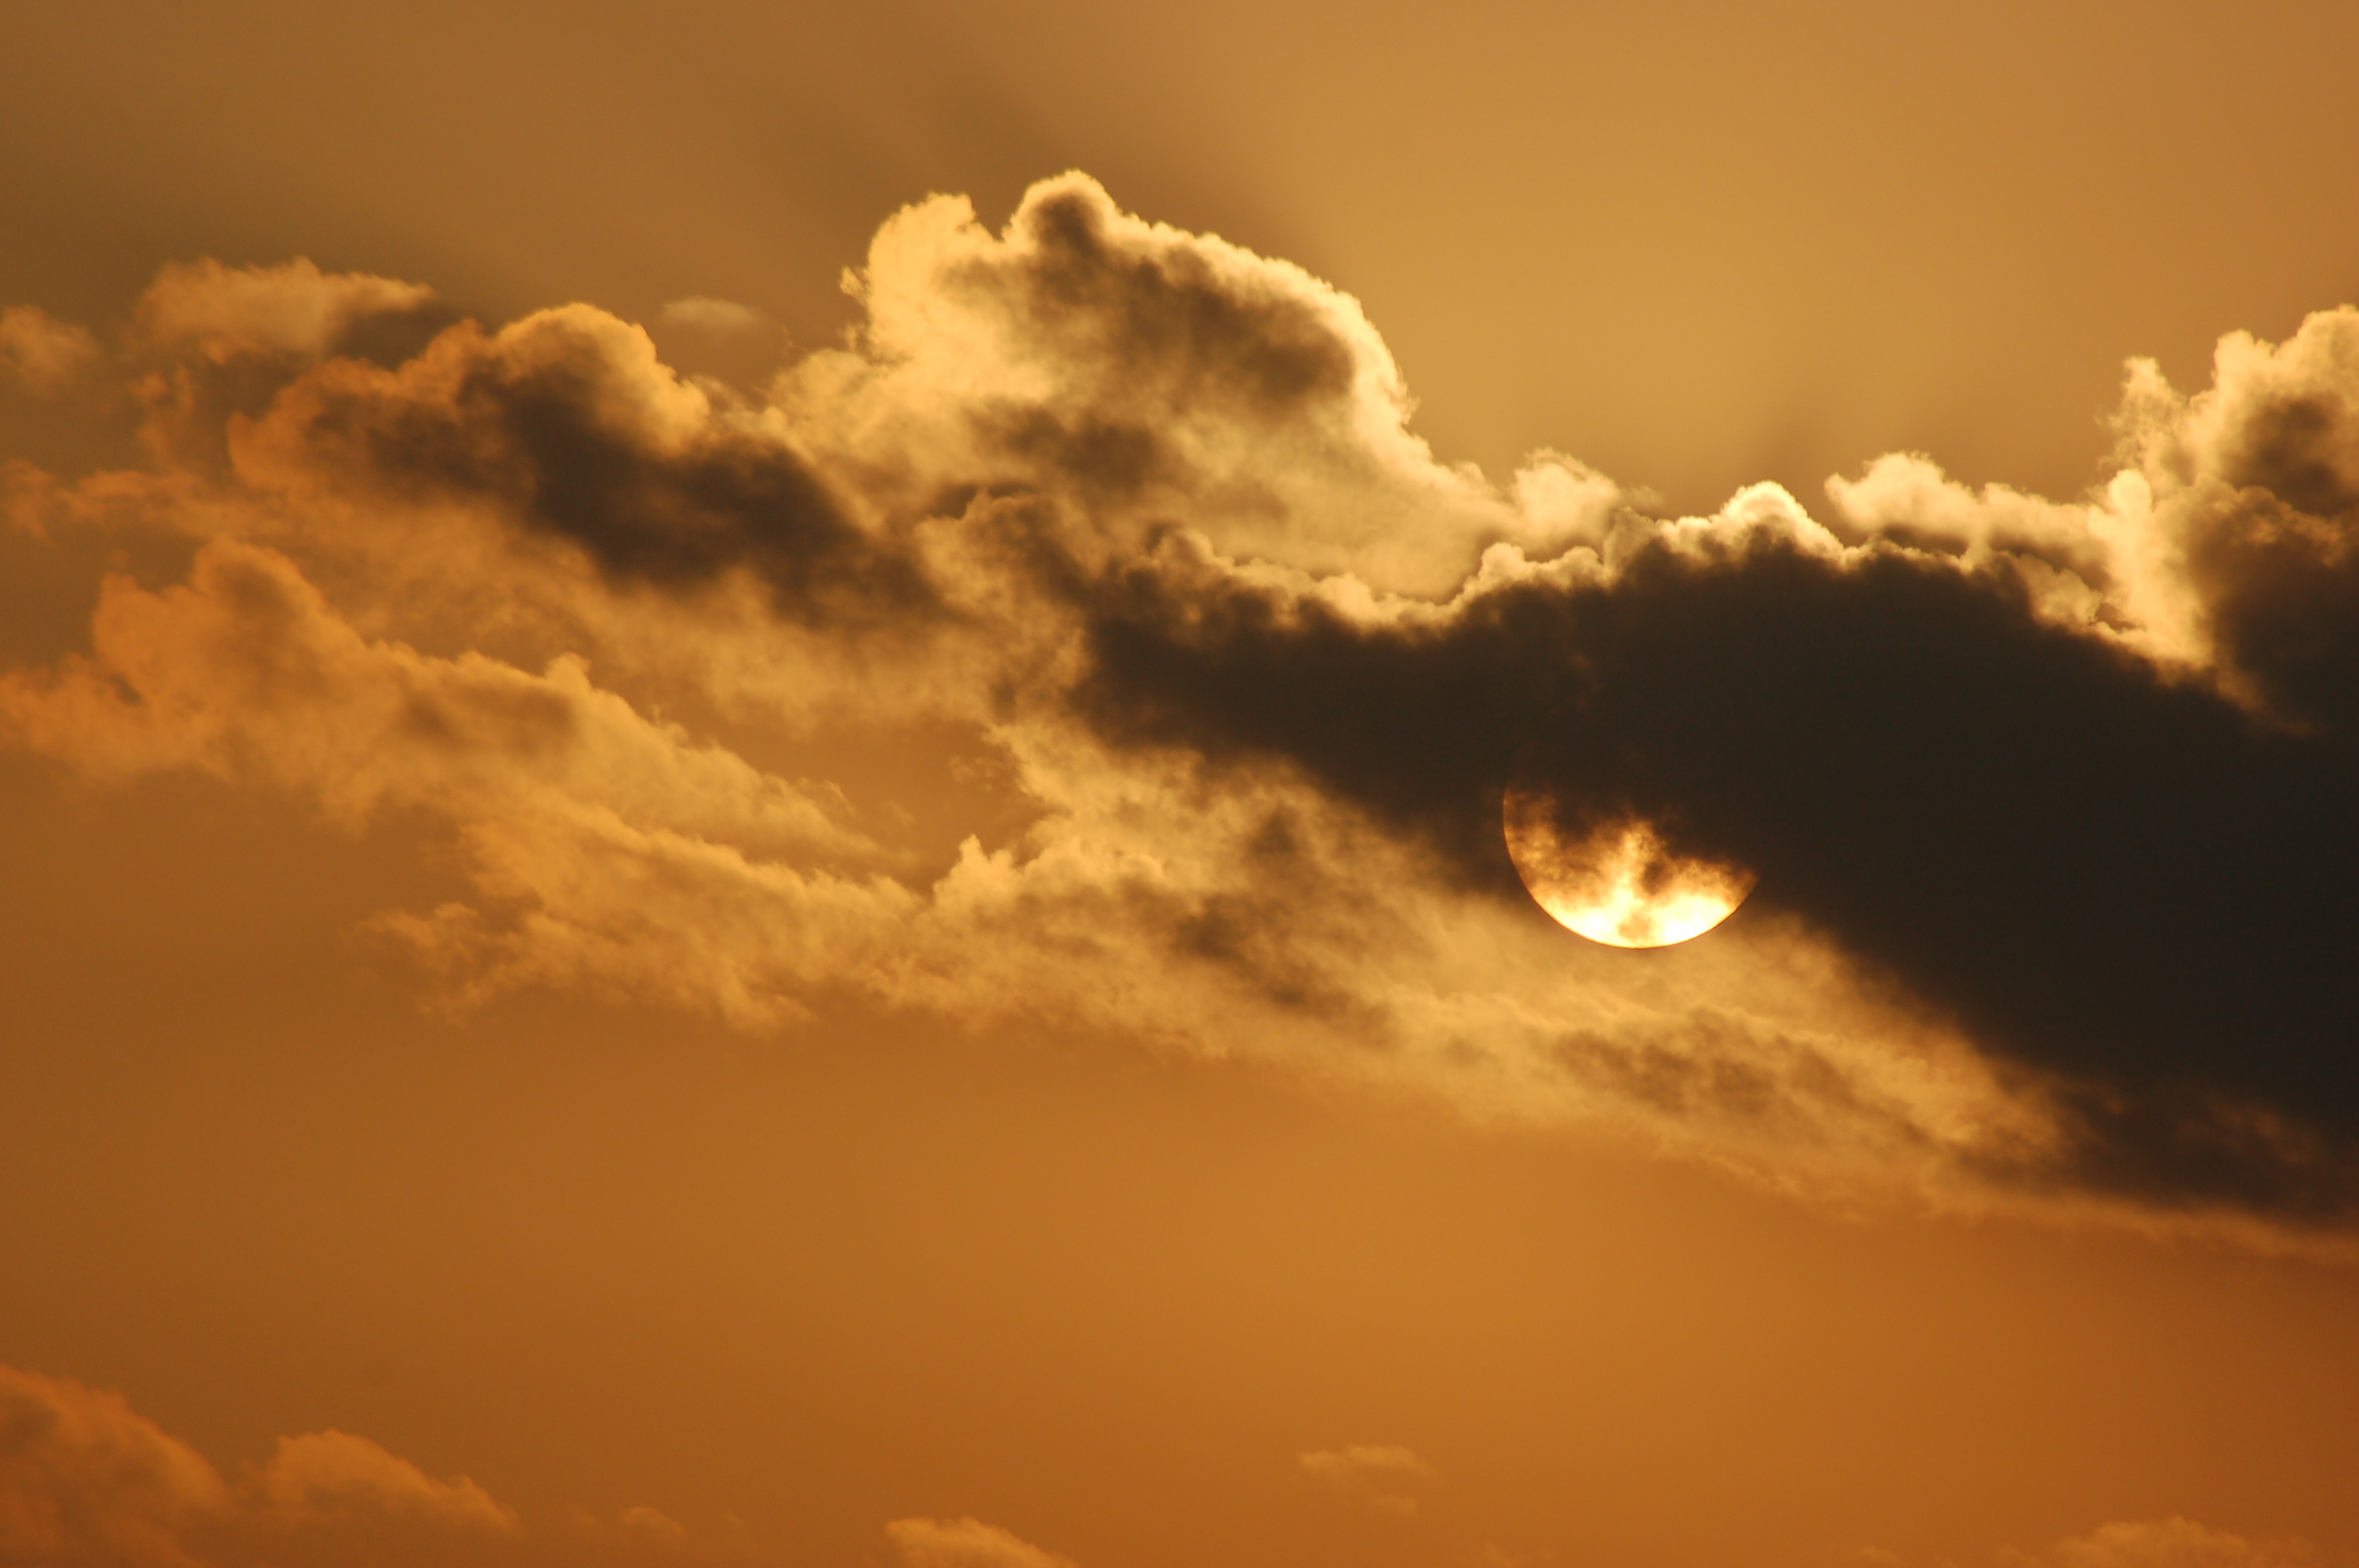 Eerie sunset by Bruce Stambaugh